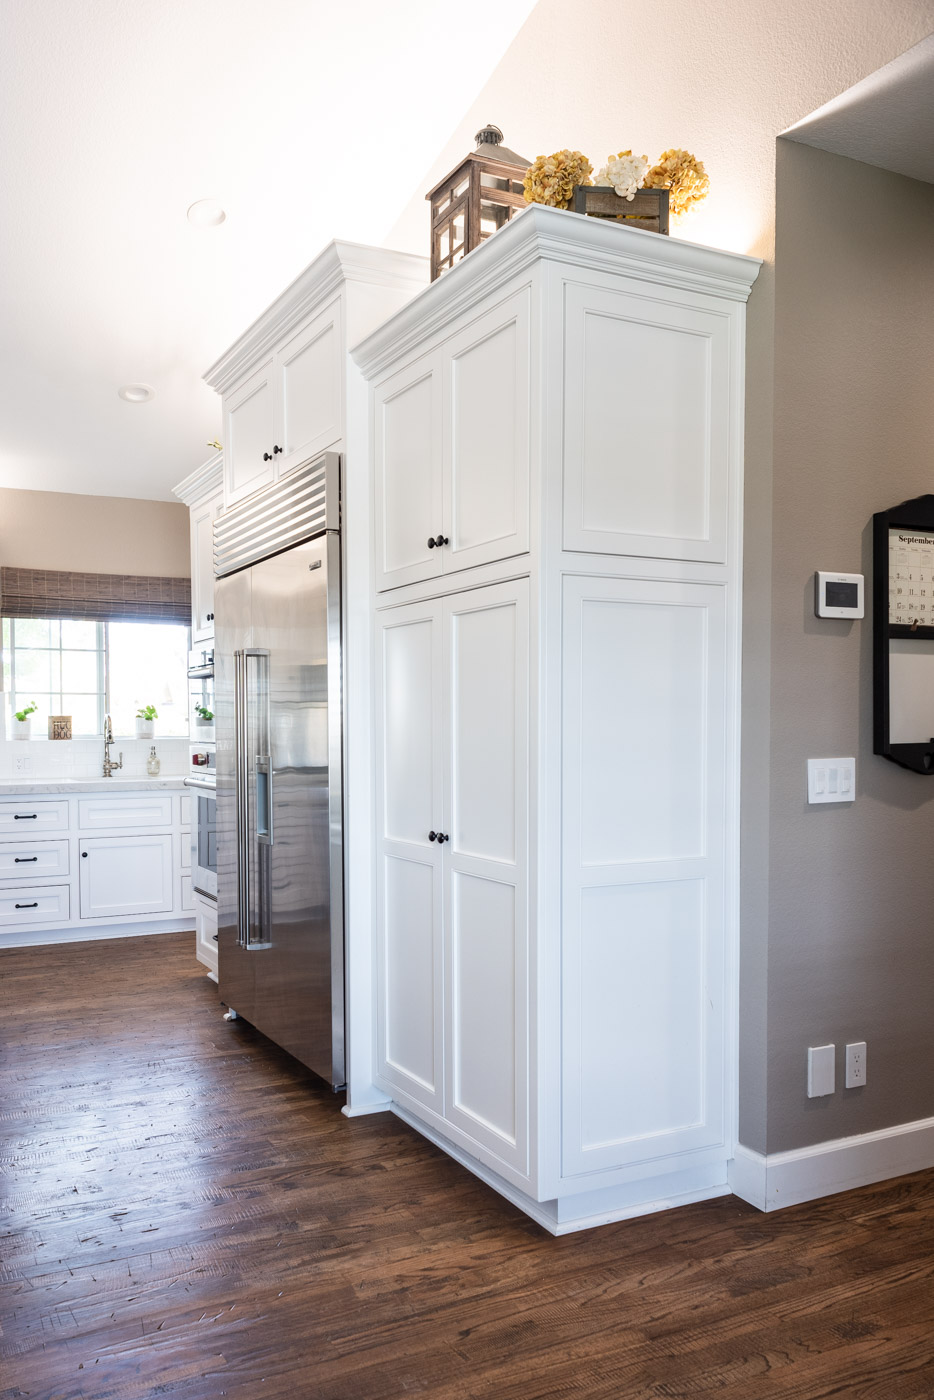 Transitional Country Cottage style kitchen with white recessed panel painted cabinets